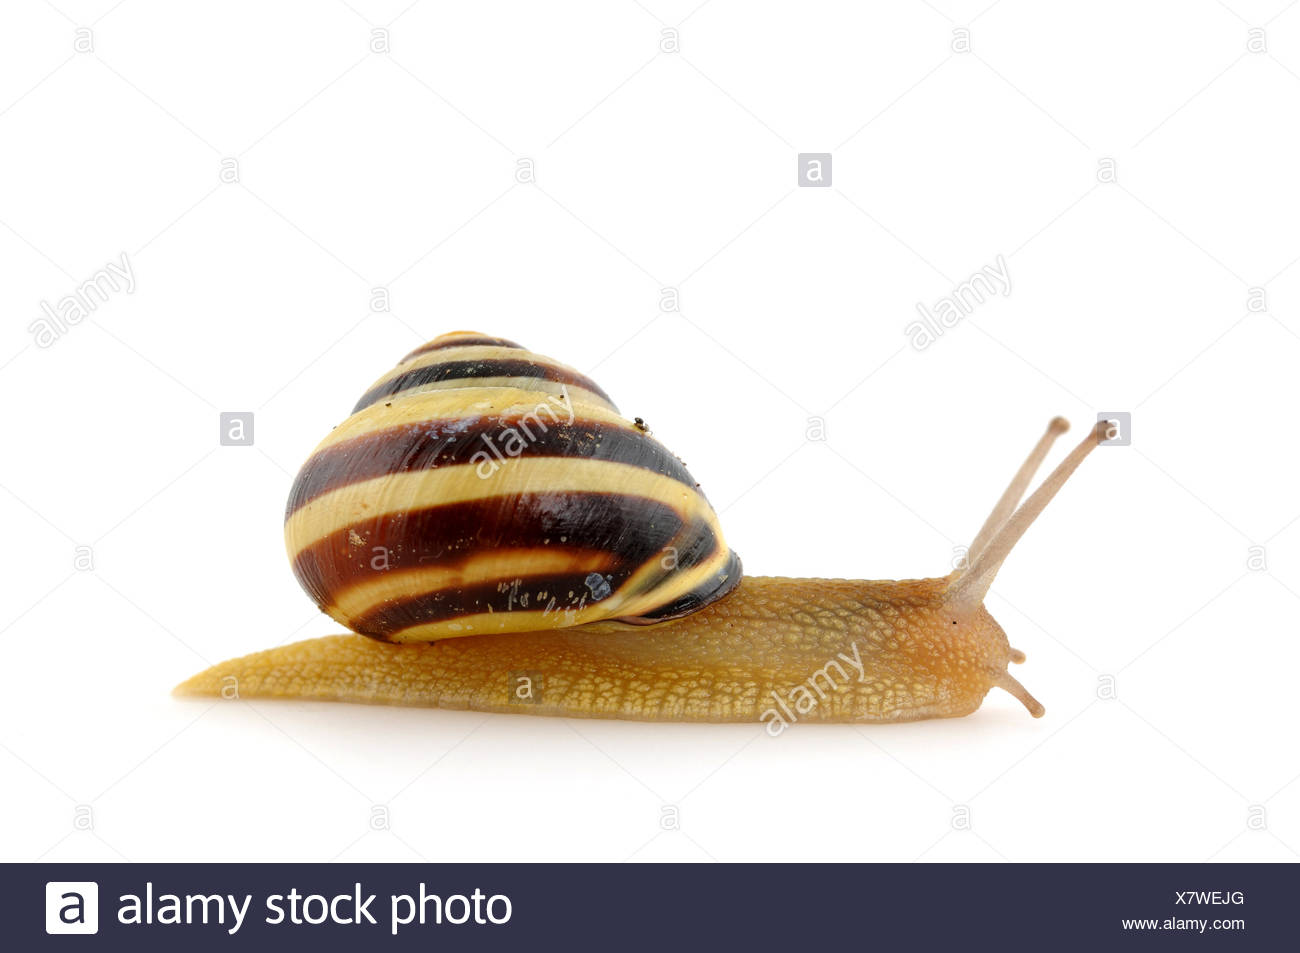 snail mucous slow - Stock Image